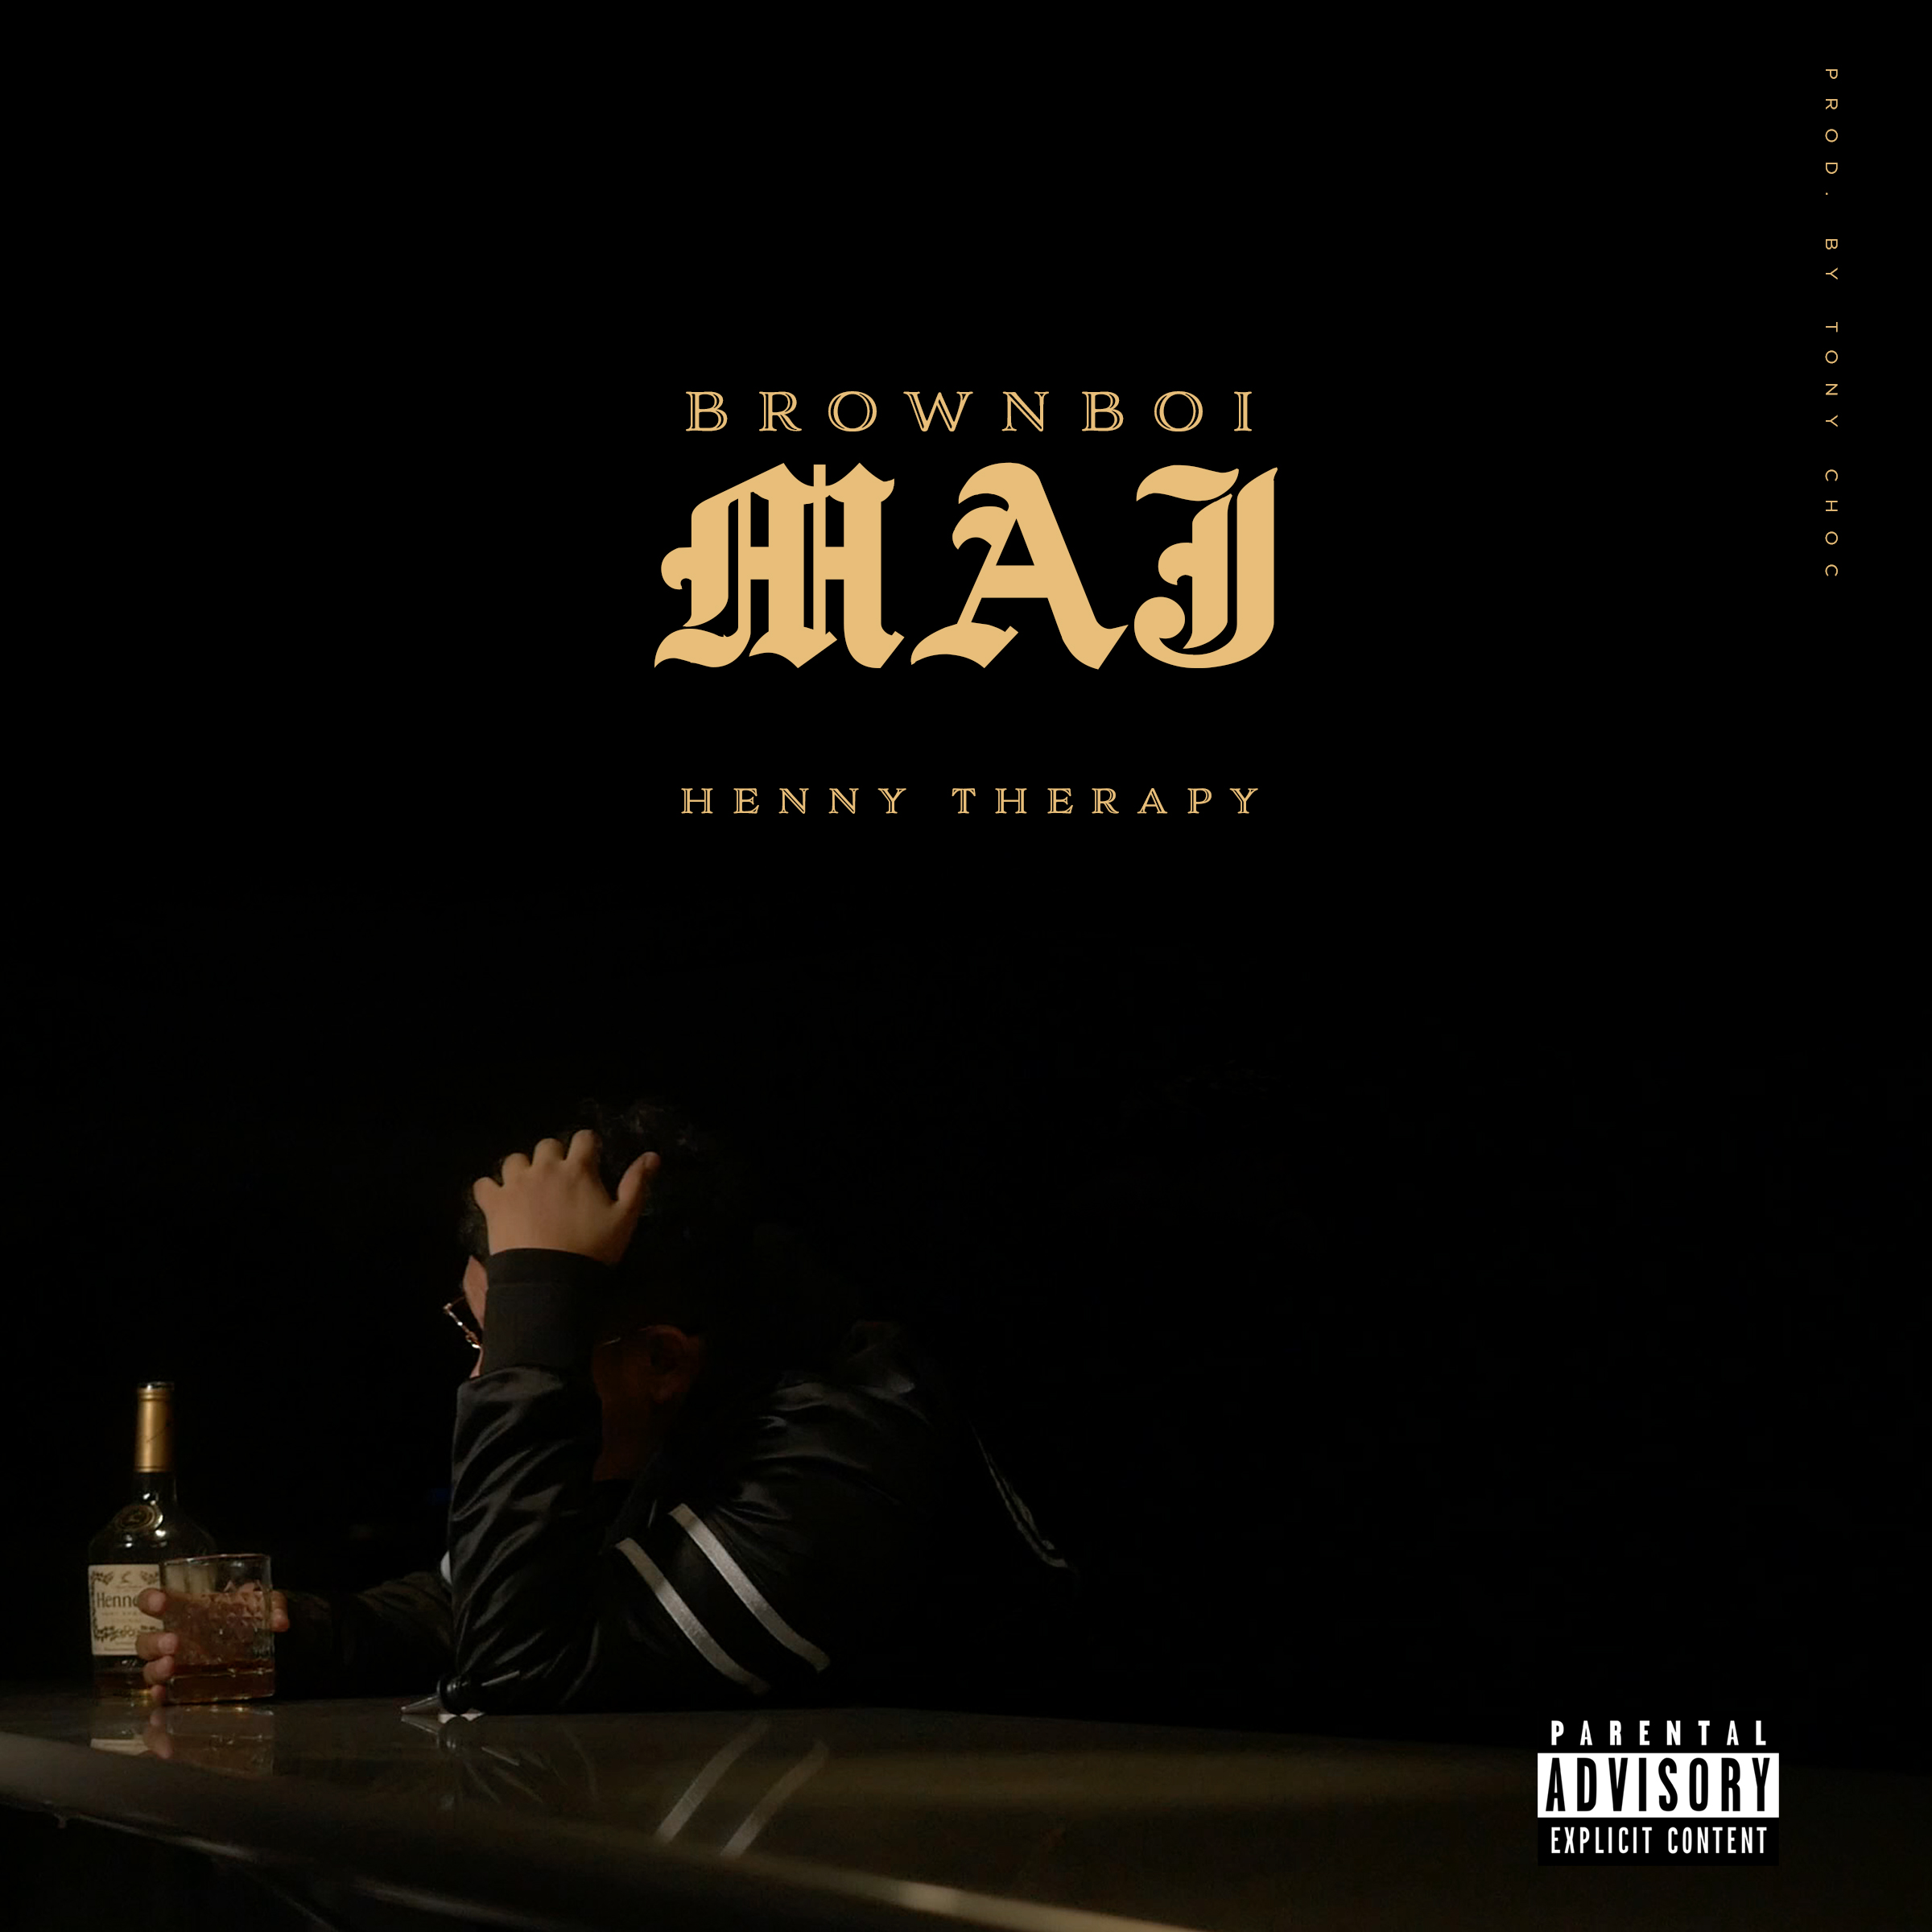 """New Music: Brownboi Maj – """"Henny Therapy (Hennessy)"""""""